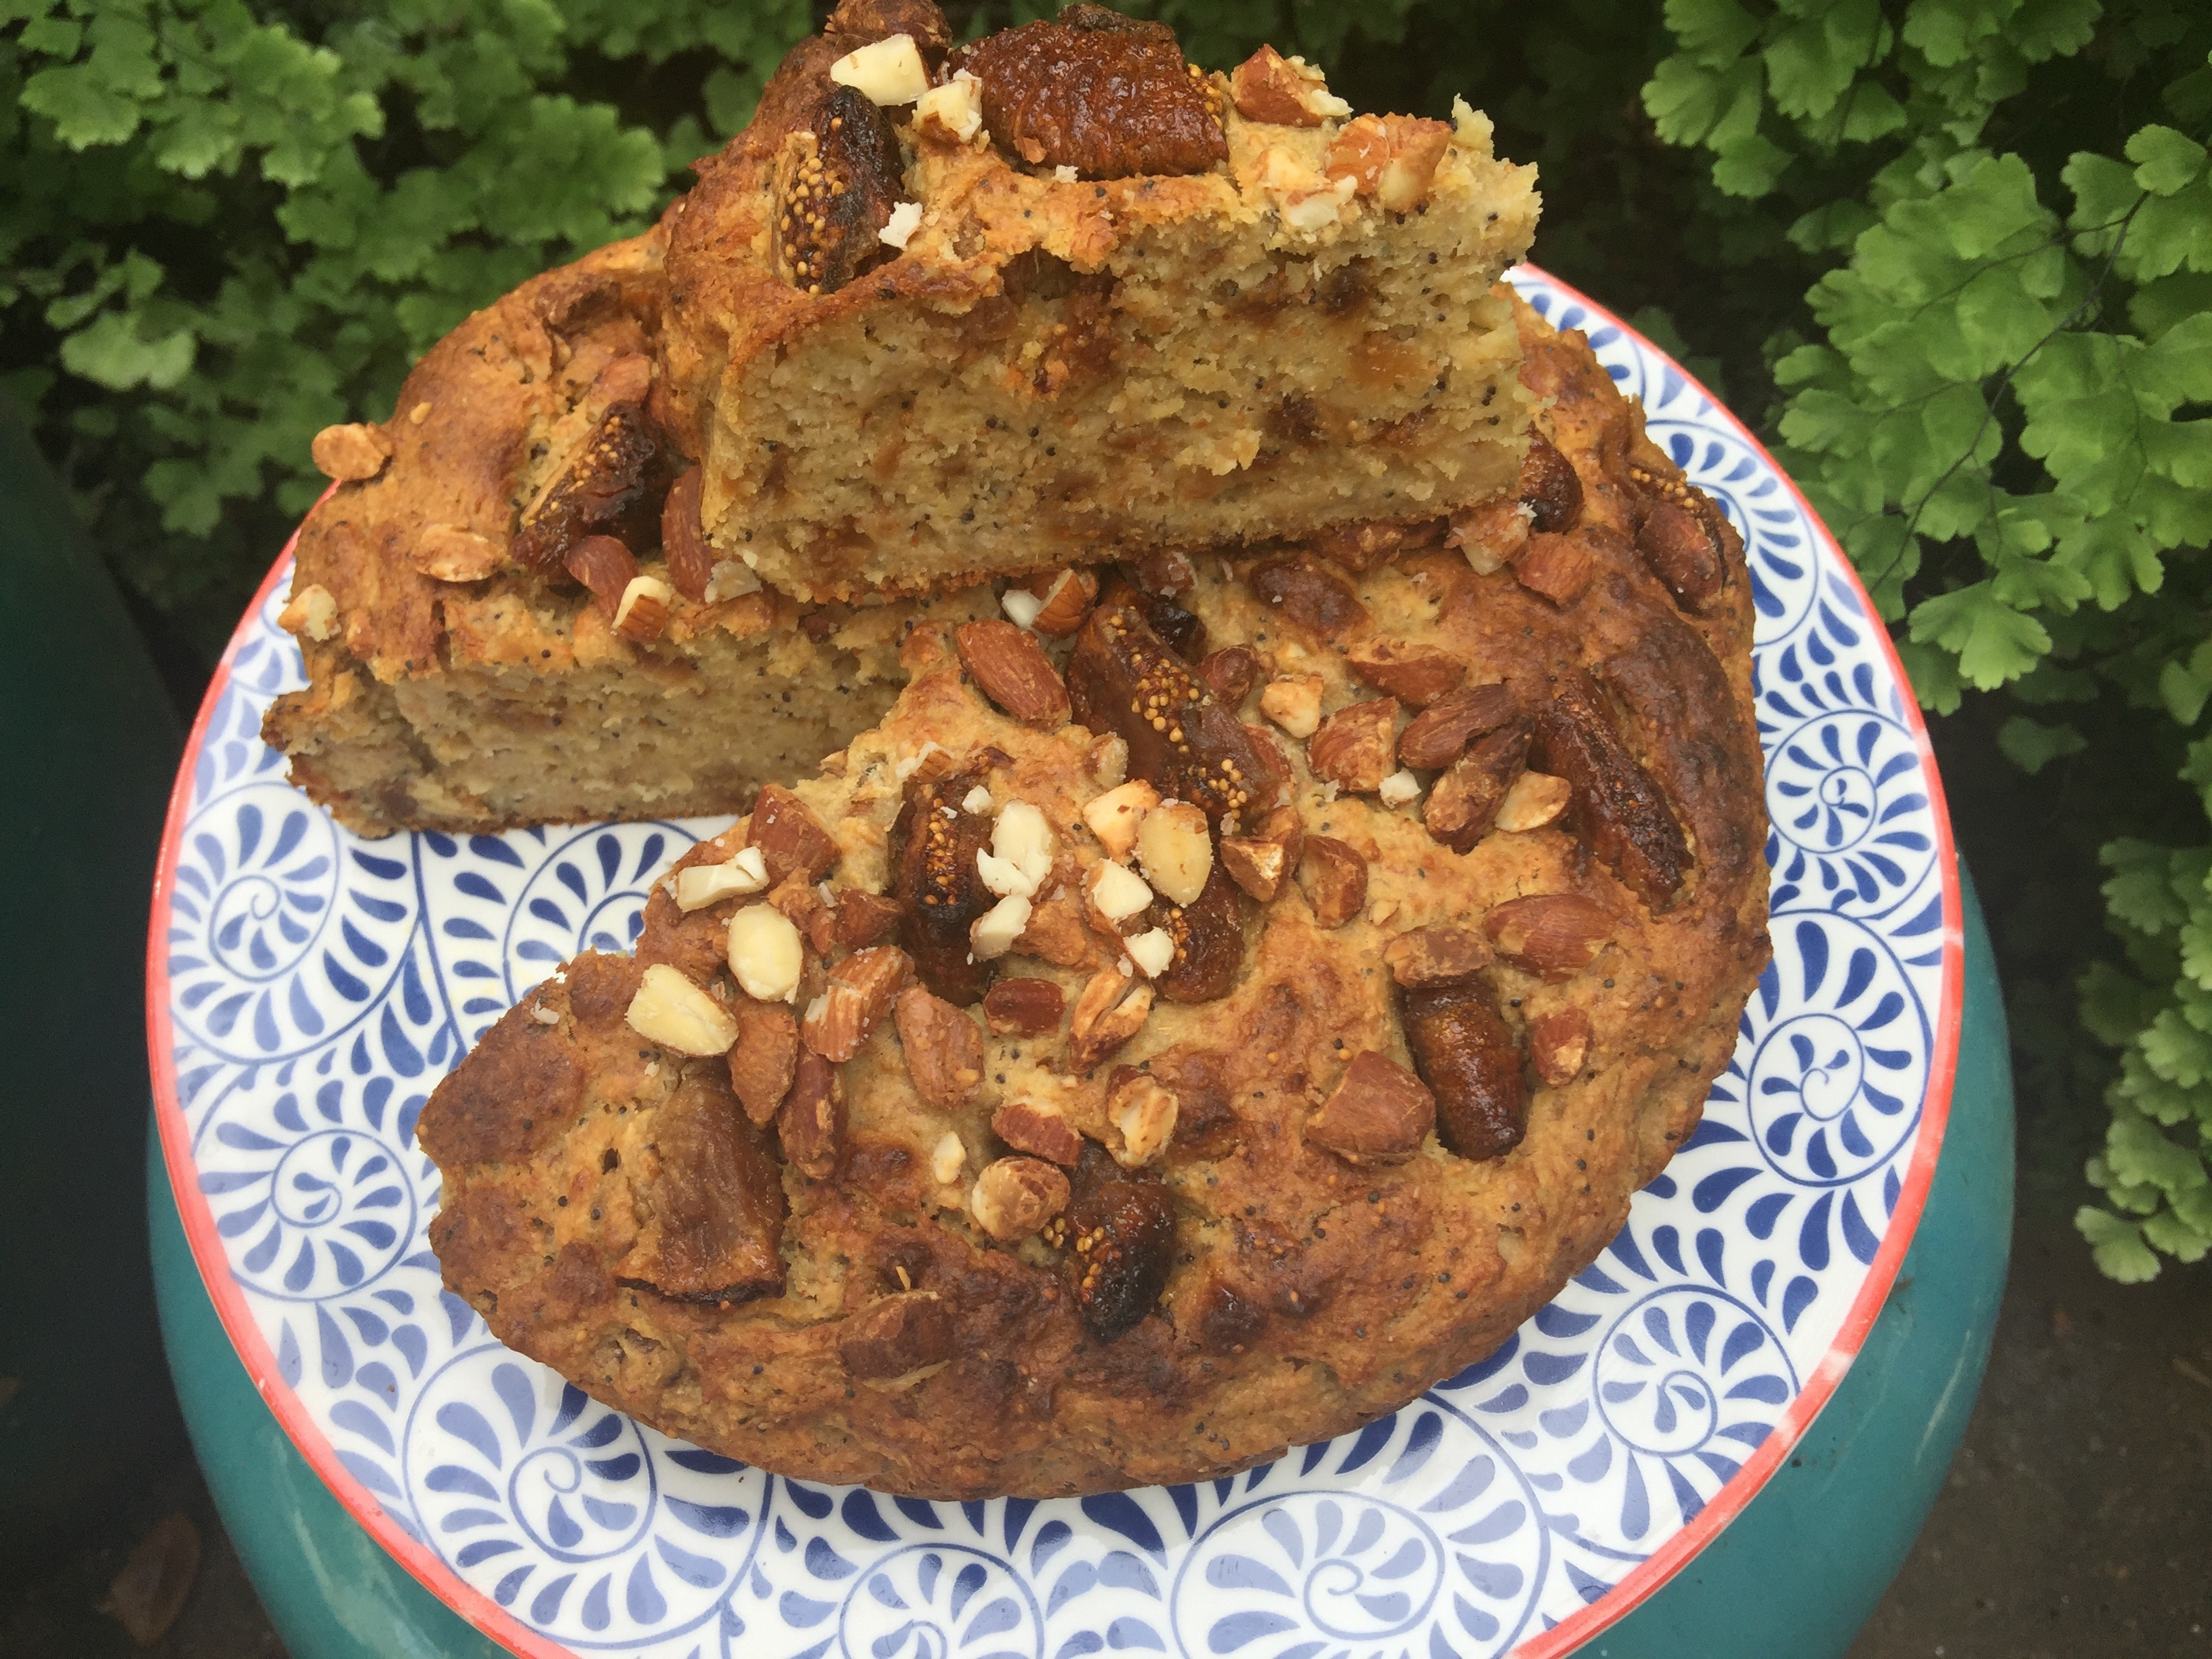 Jamie oliver figgy banana bread the quirk and the cool another lovely recipe from jamie olivers healthy cookbook everyday super food its a banana bread that is very flavoursome and sweet with remarkably forumfinder Images